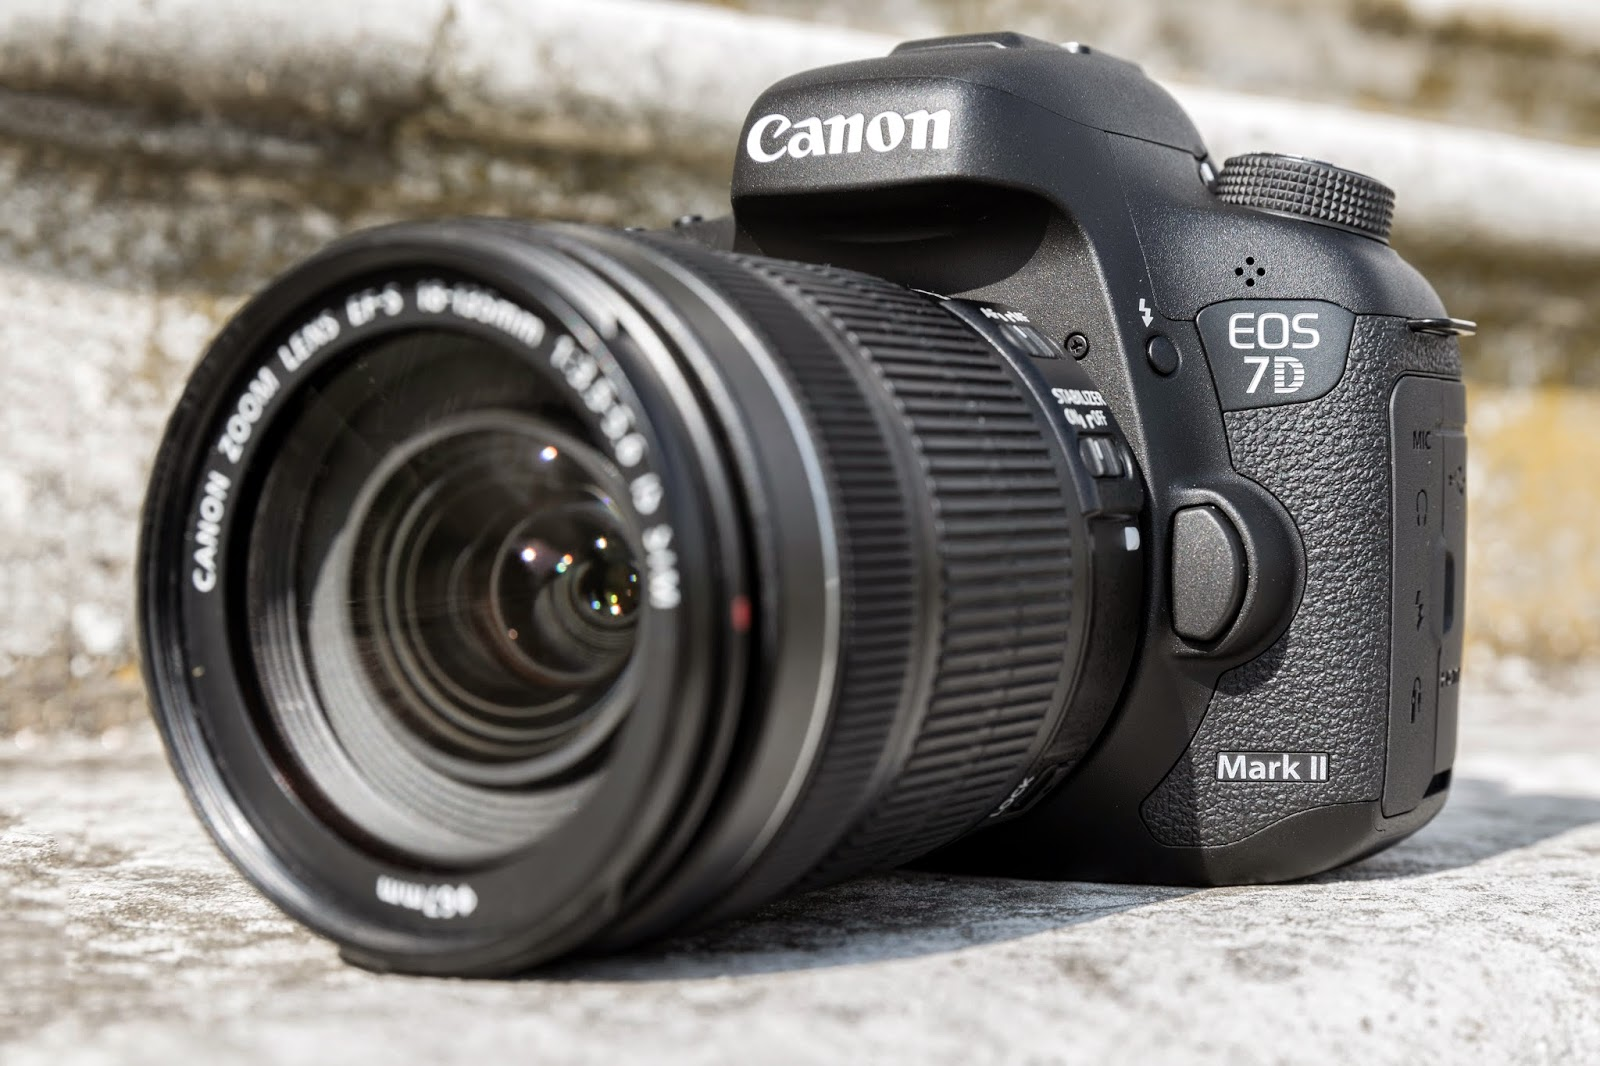 Canon eos 7d mark ii hands on and first impressions